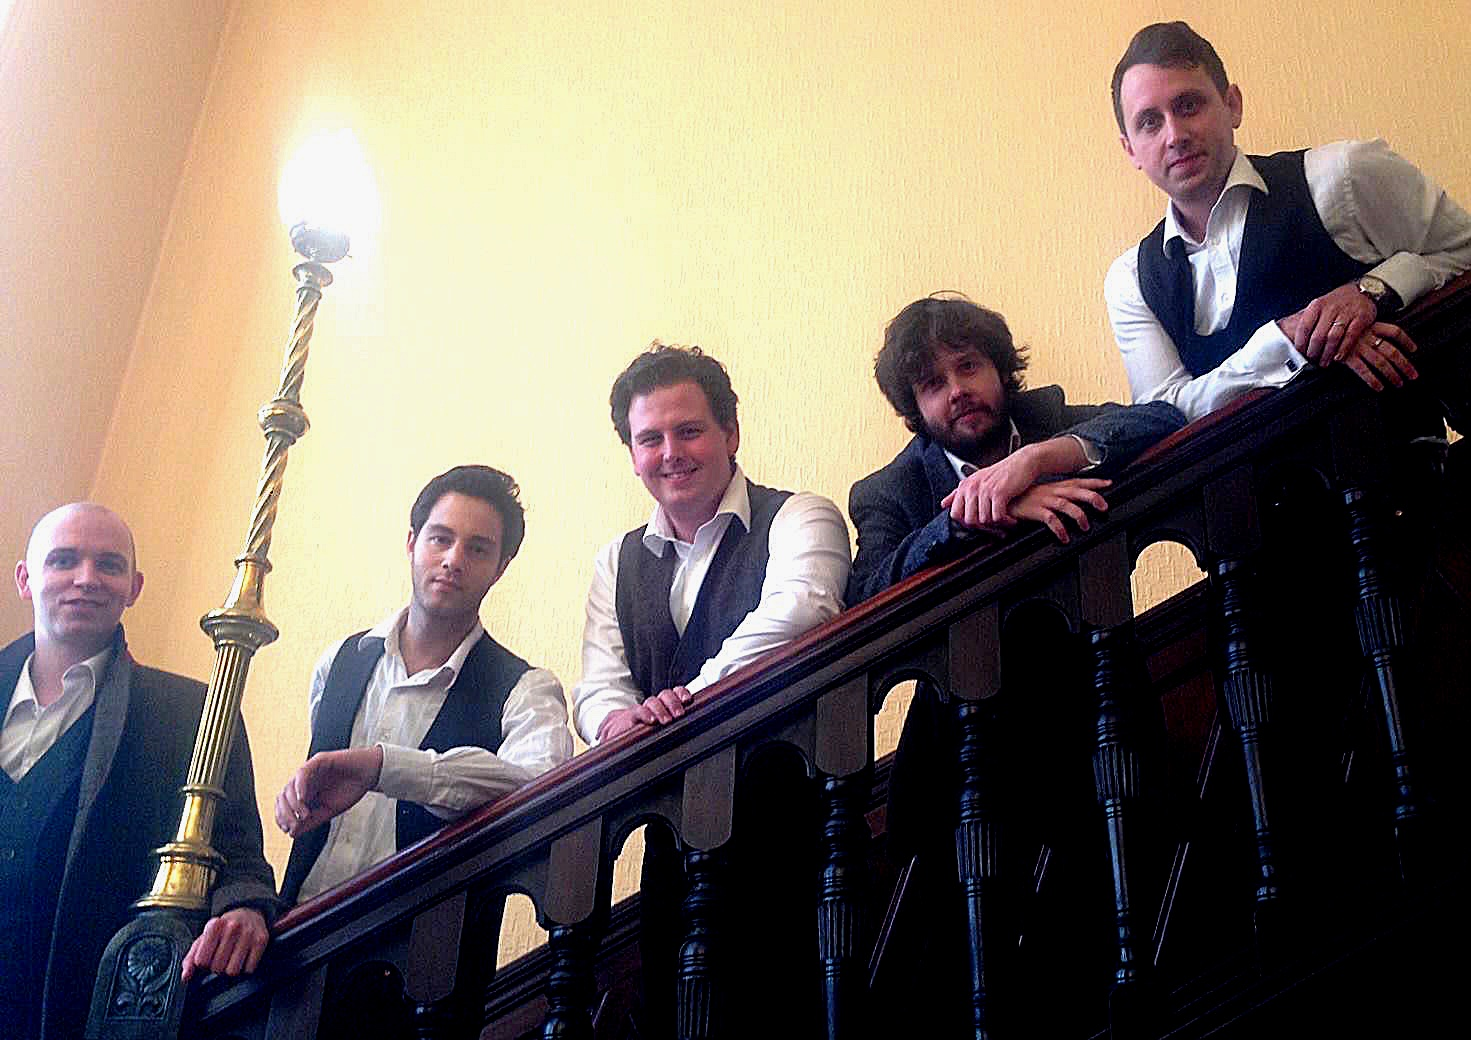 Colour portrait photograph showing Jonathan Forbes Kennedy, baritone, with fellow members of Scozzesi, the male vocal ensemble (Courtesy of Classical Musicians Scotland)